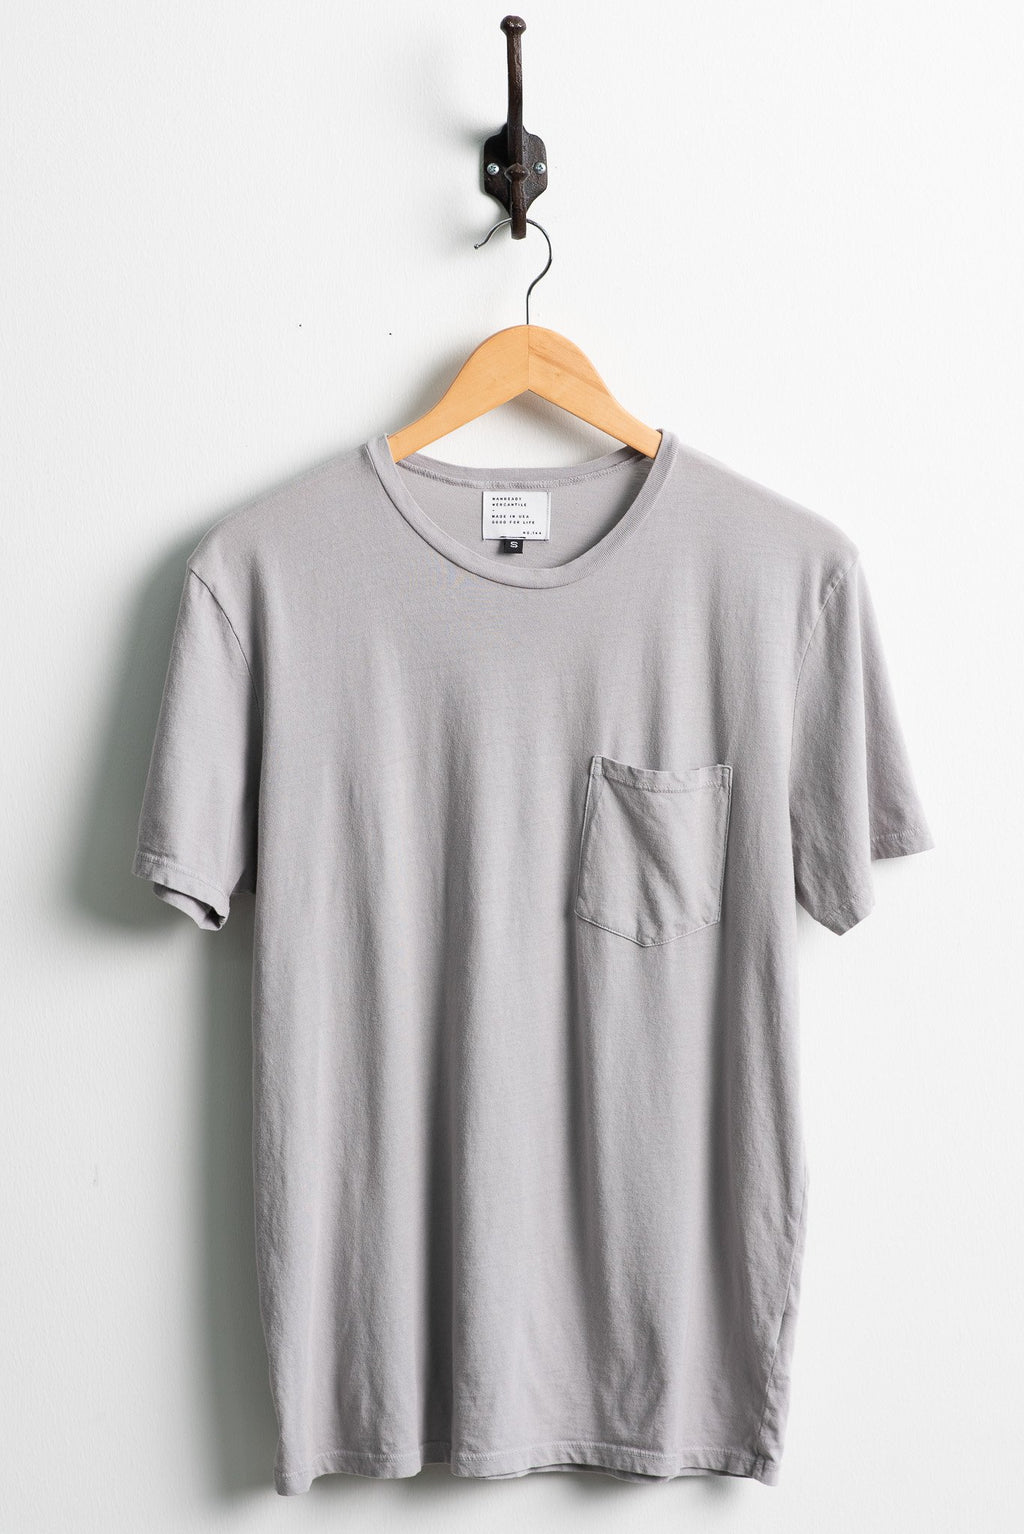 Manready Mercantile Basic Pocket Tee in Washed Grey available at manready.com